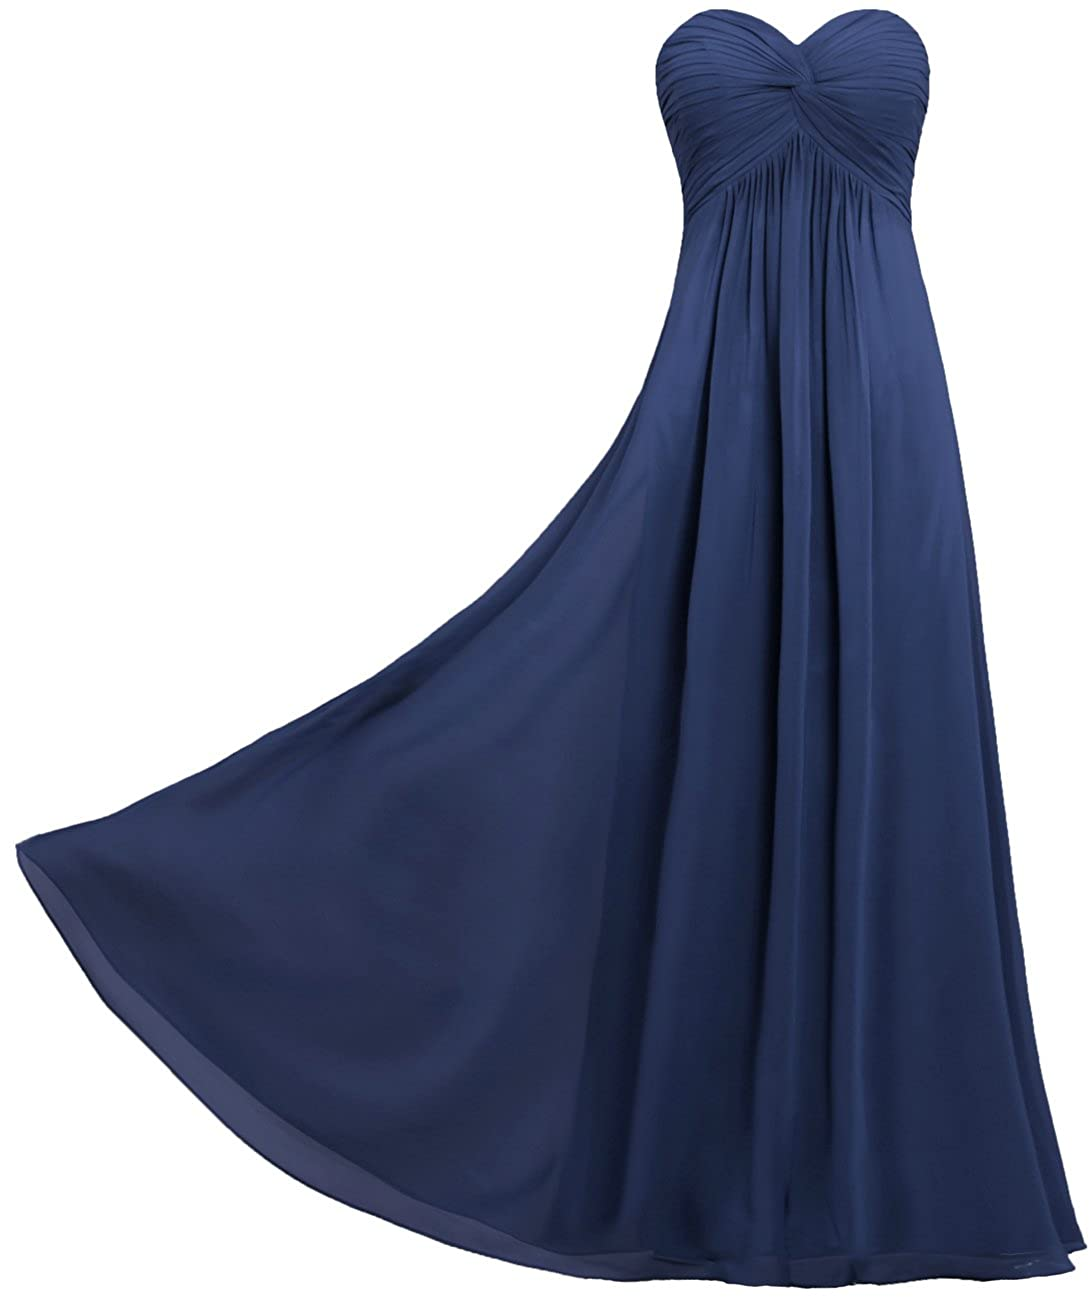 ANTS Womens Pleat Chiffon Strapless Bridesmaid Dresses Long Gowns